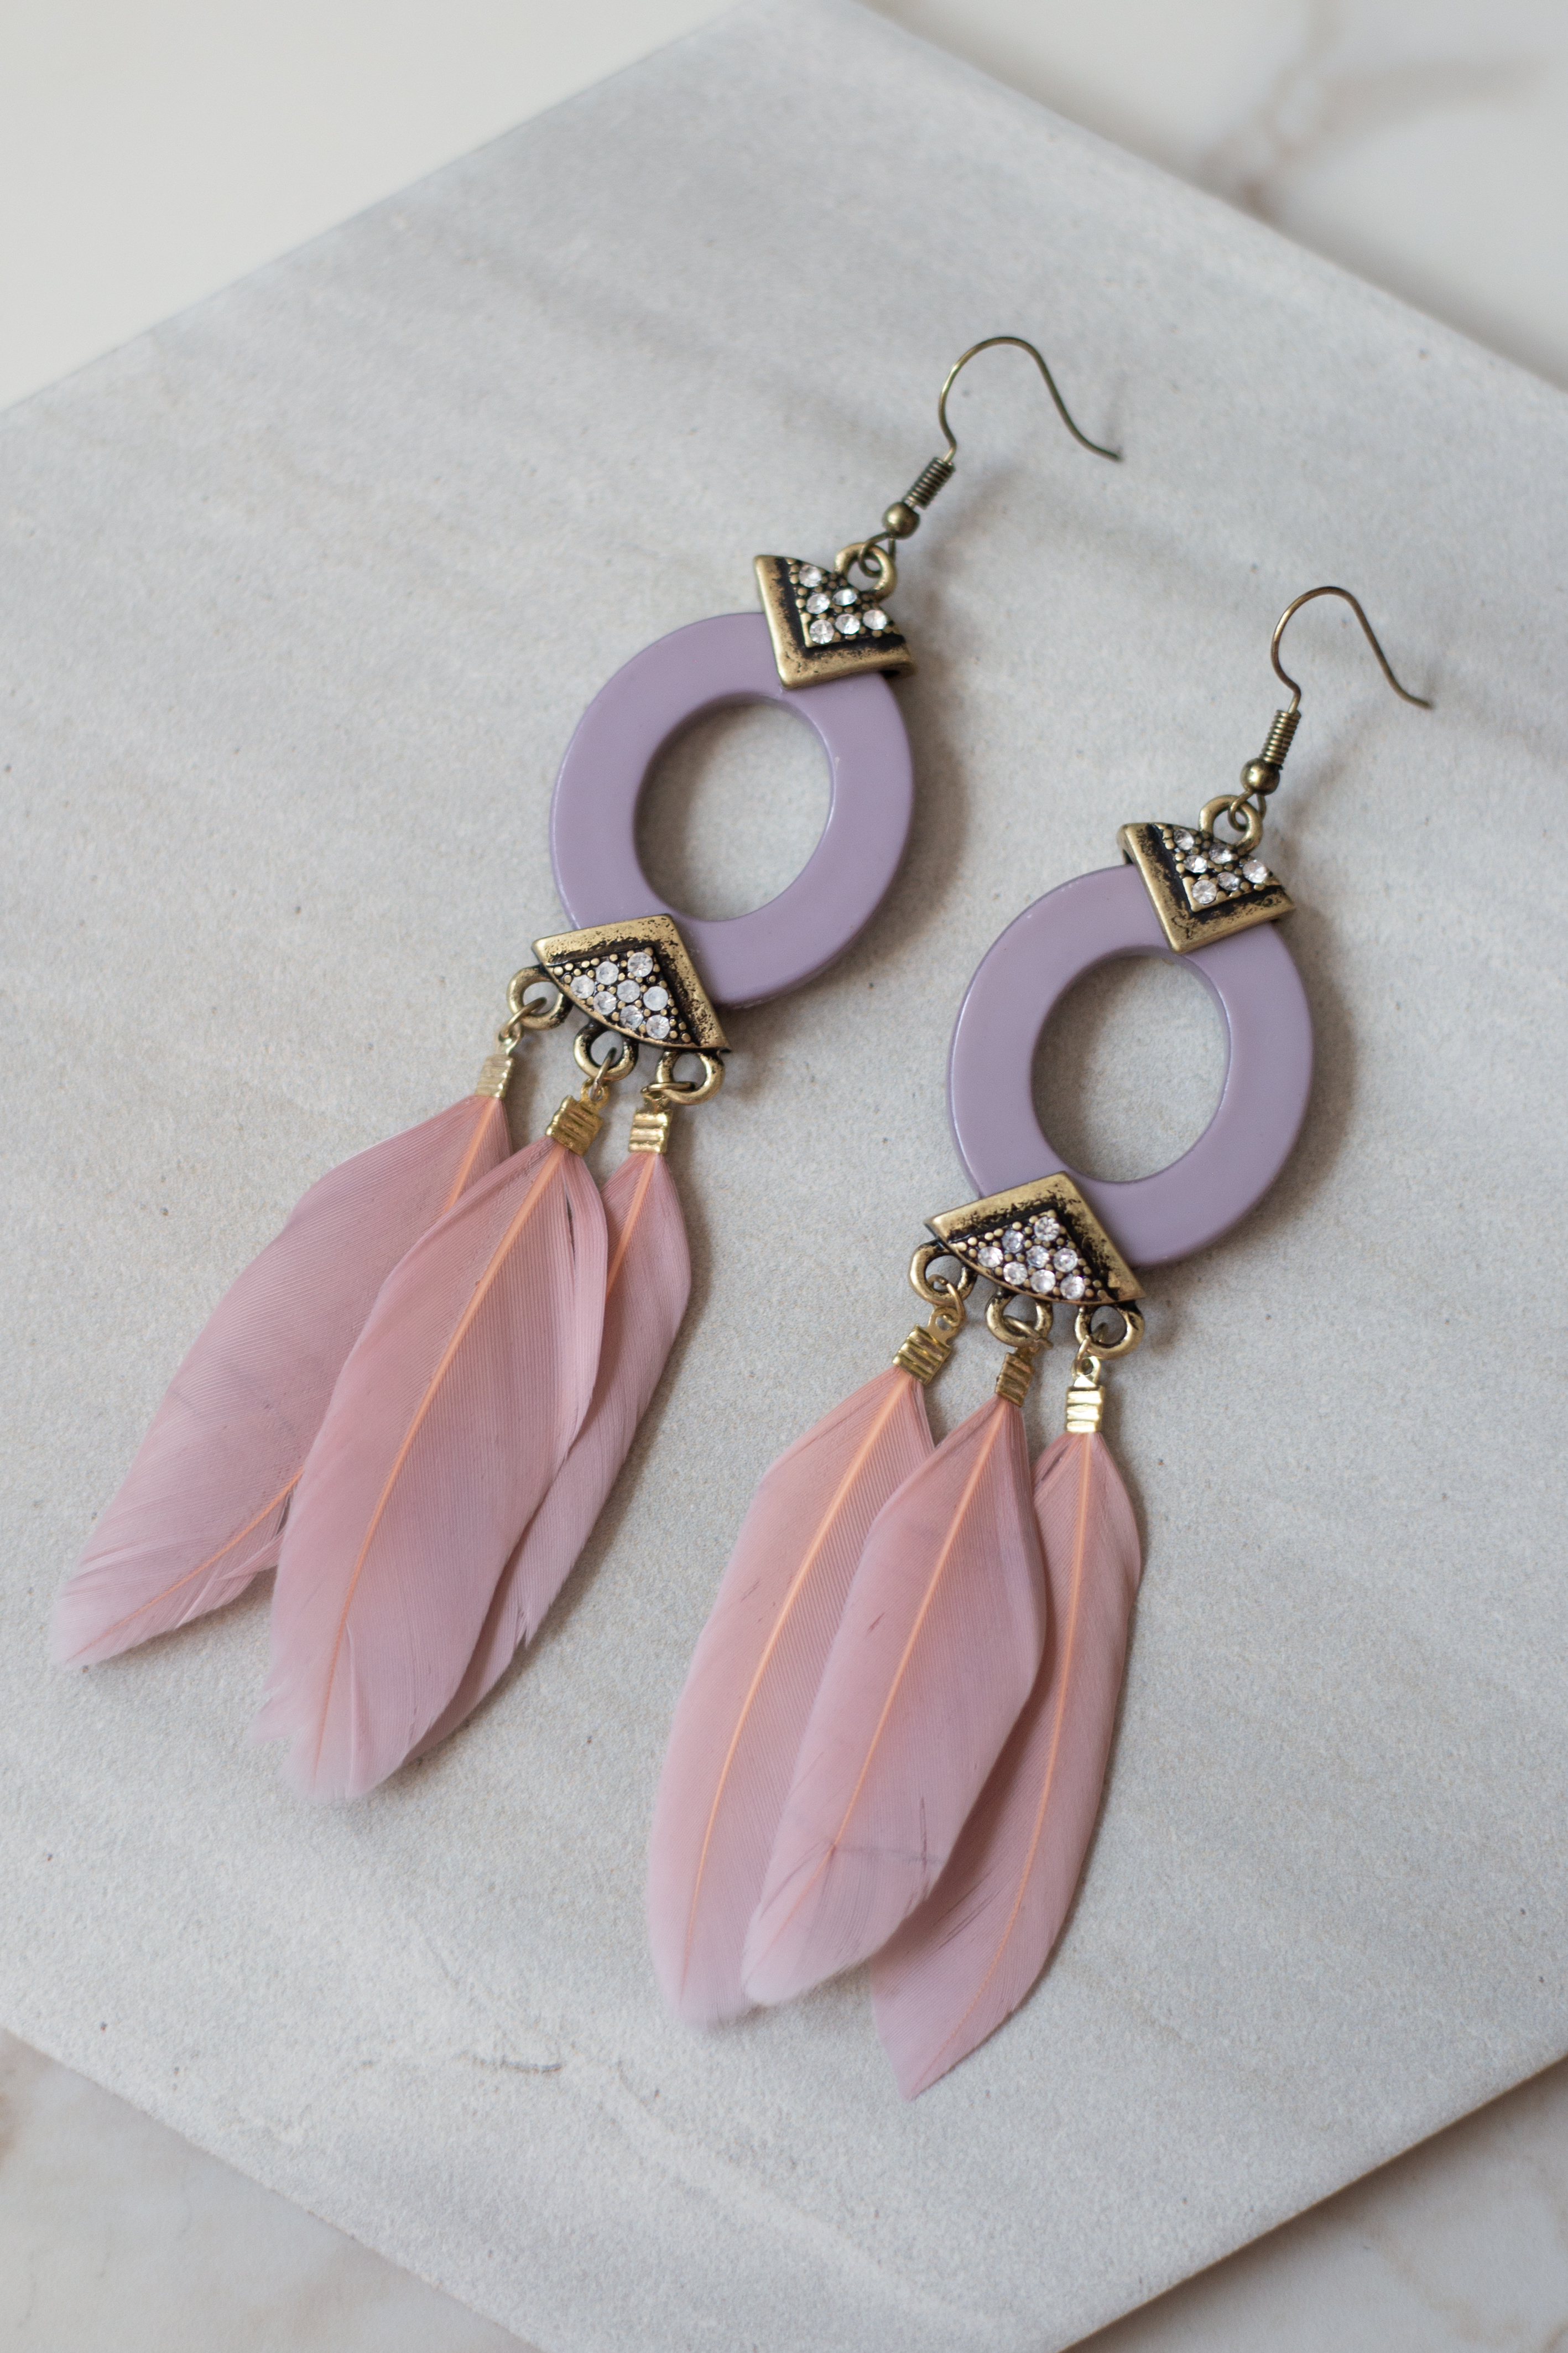 Mauve Statement Earrings with Rhinestone and Feather Details